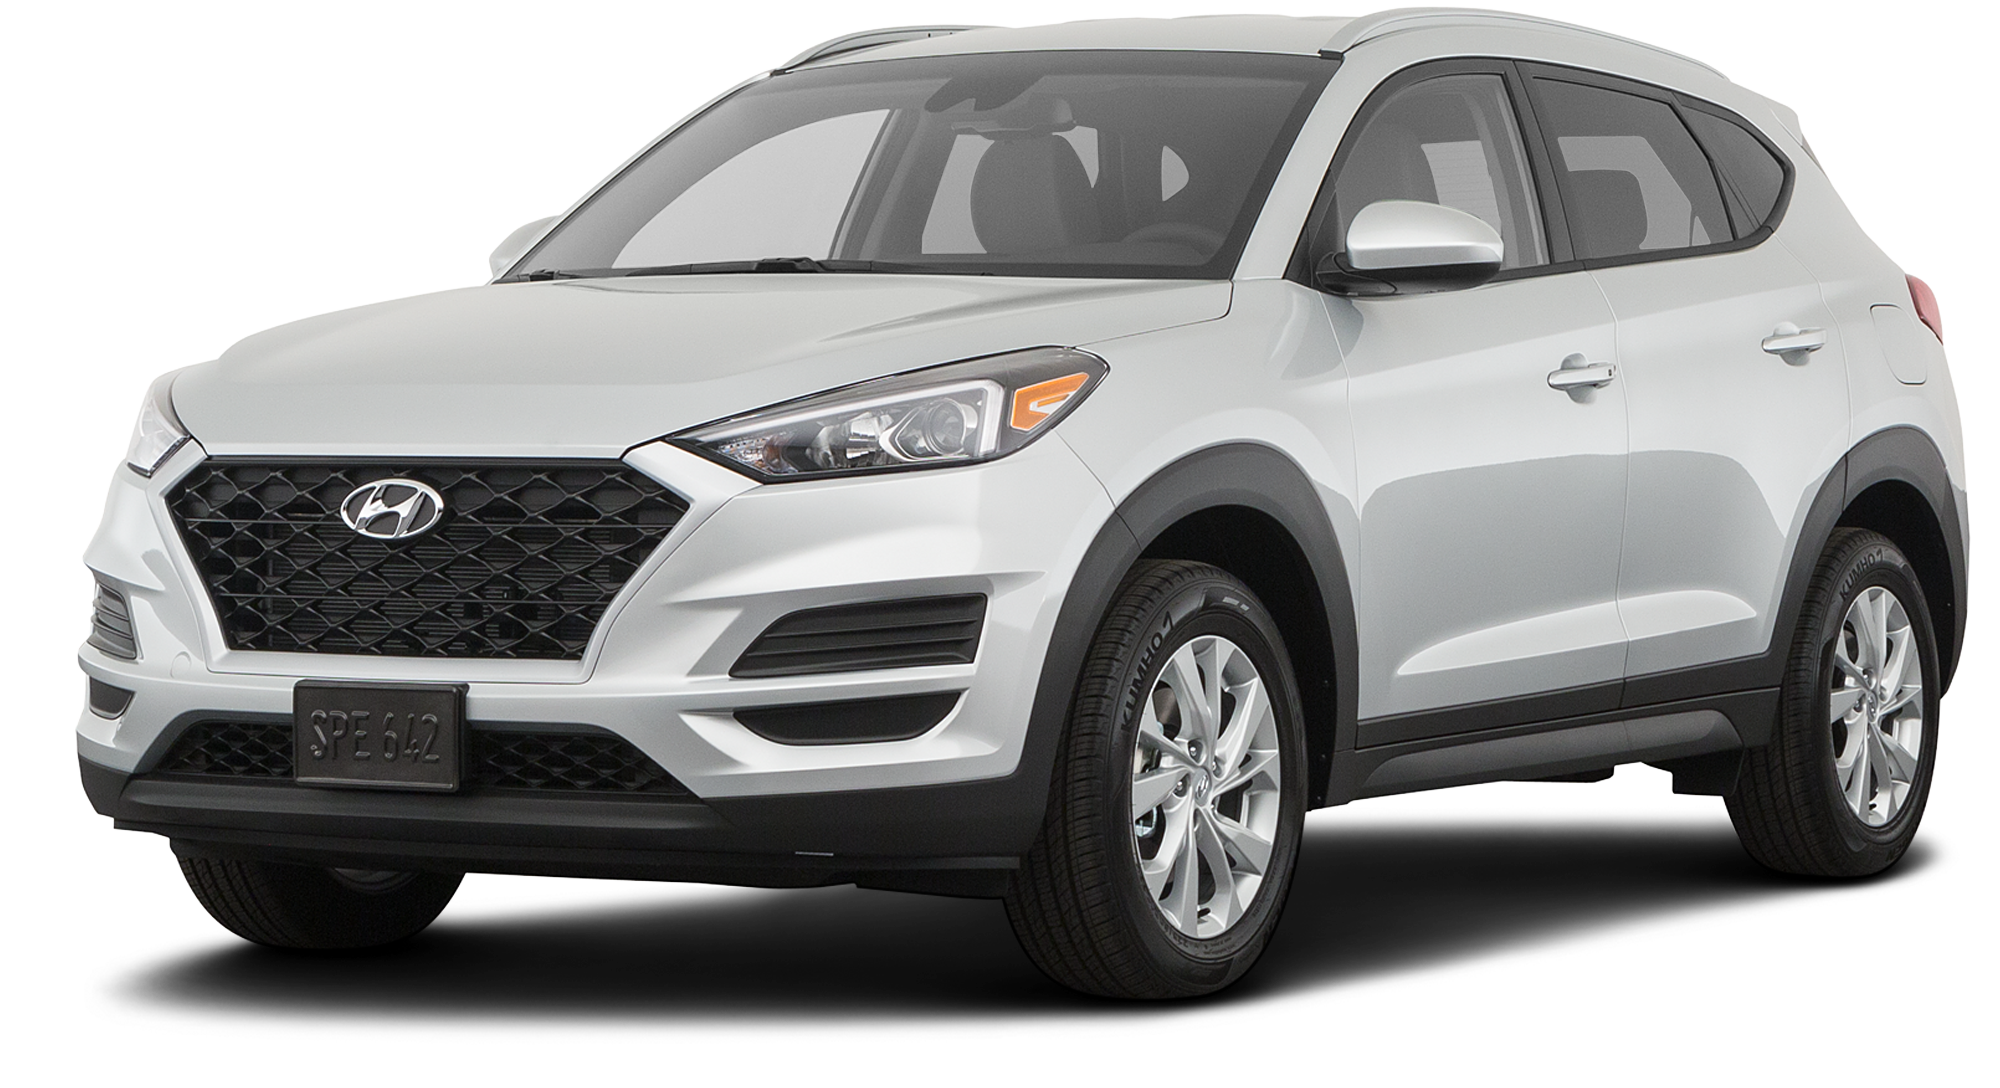 2019 hyundai tucson incentives specials offers in. Black Bedroom Furniture Sets. Home Design Ideas